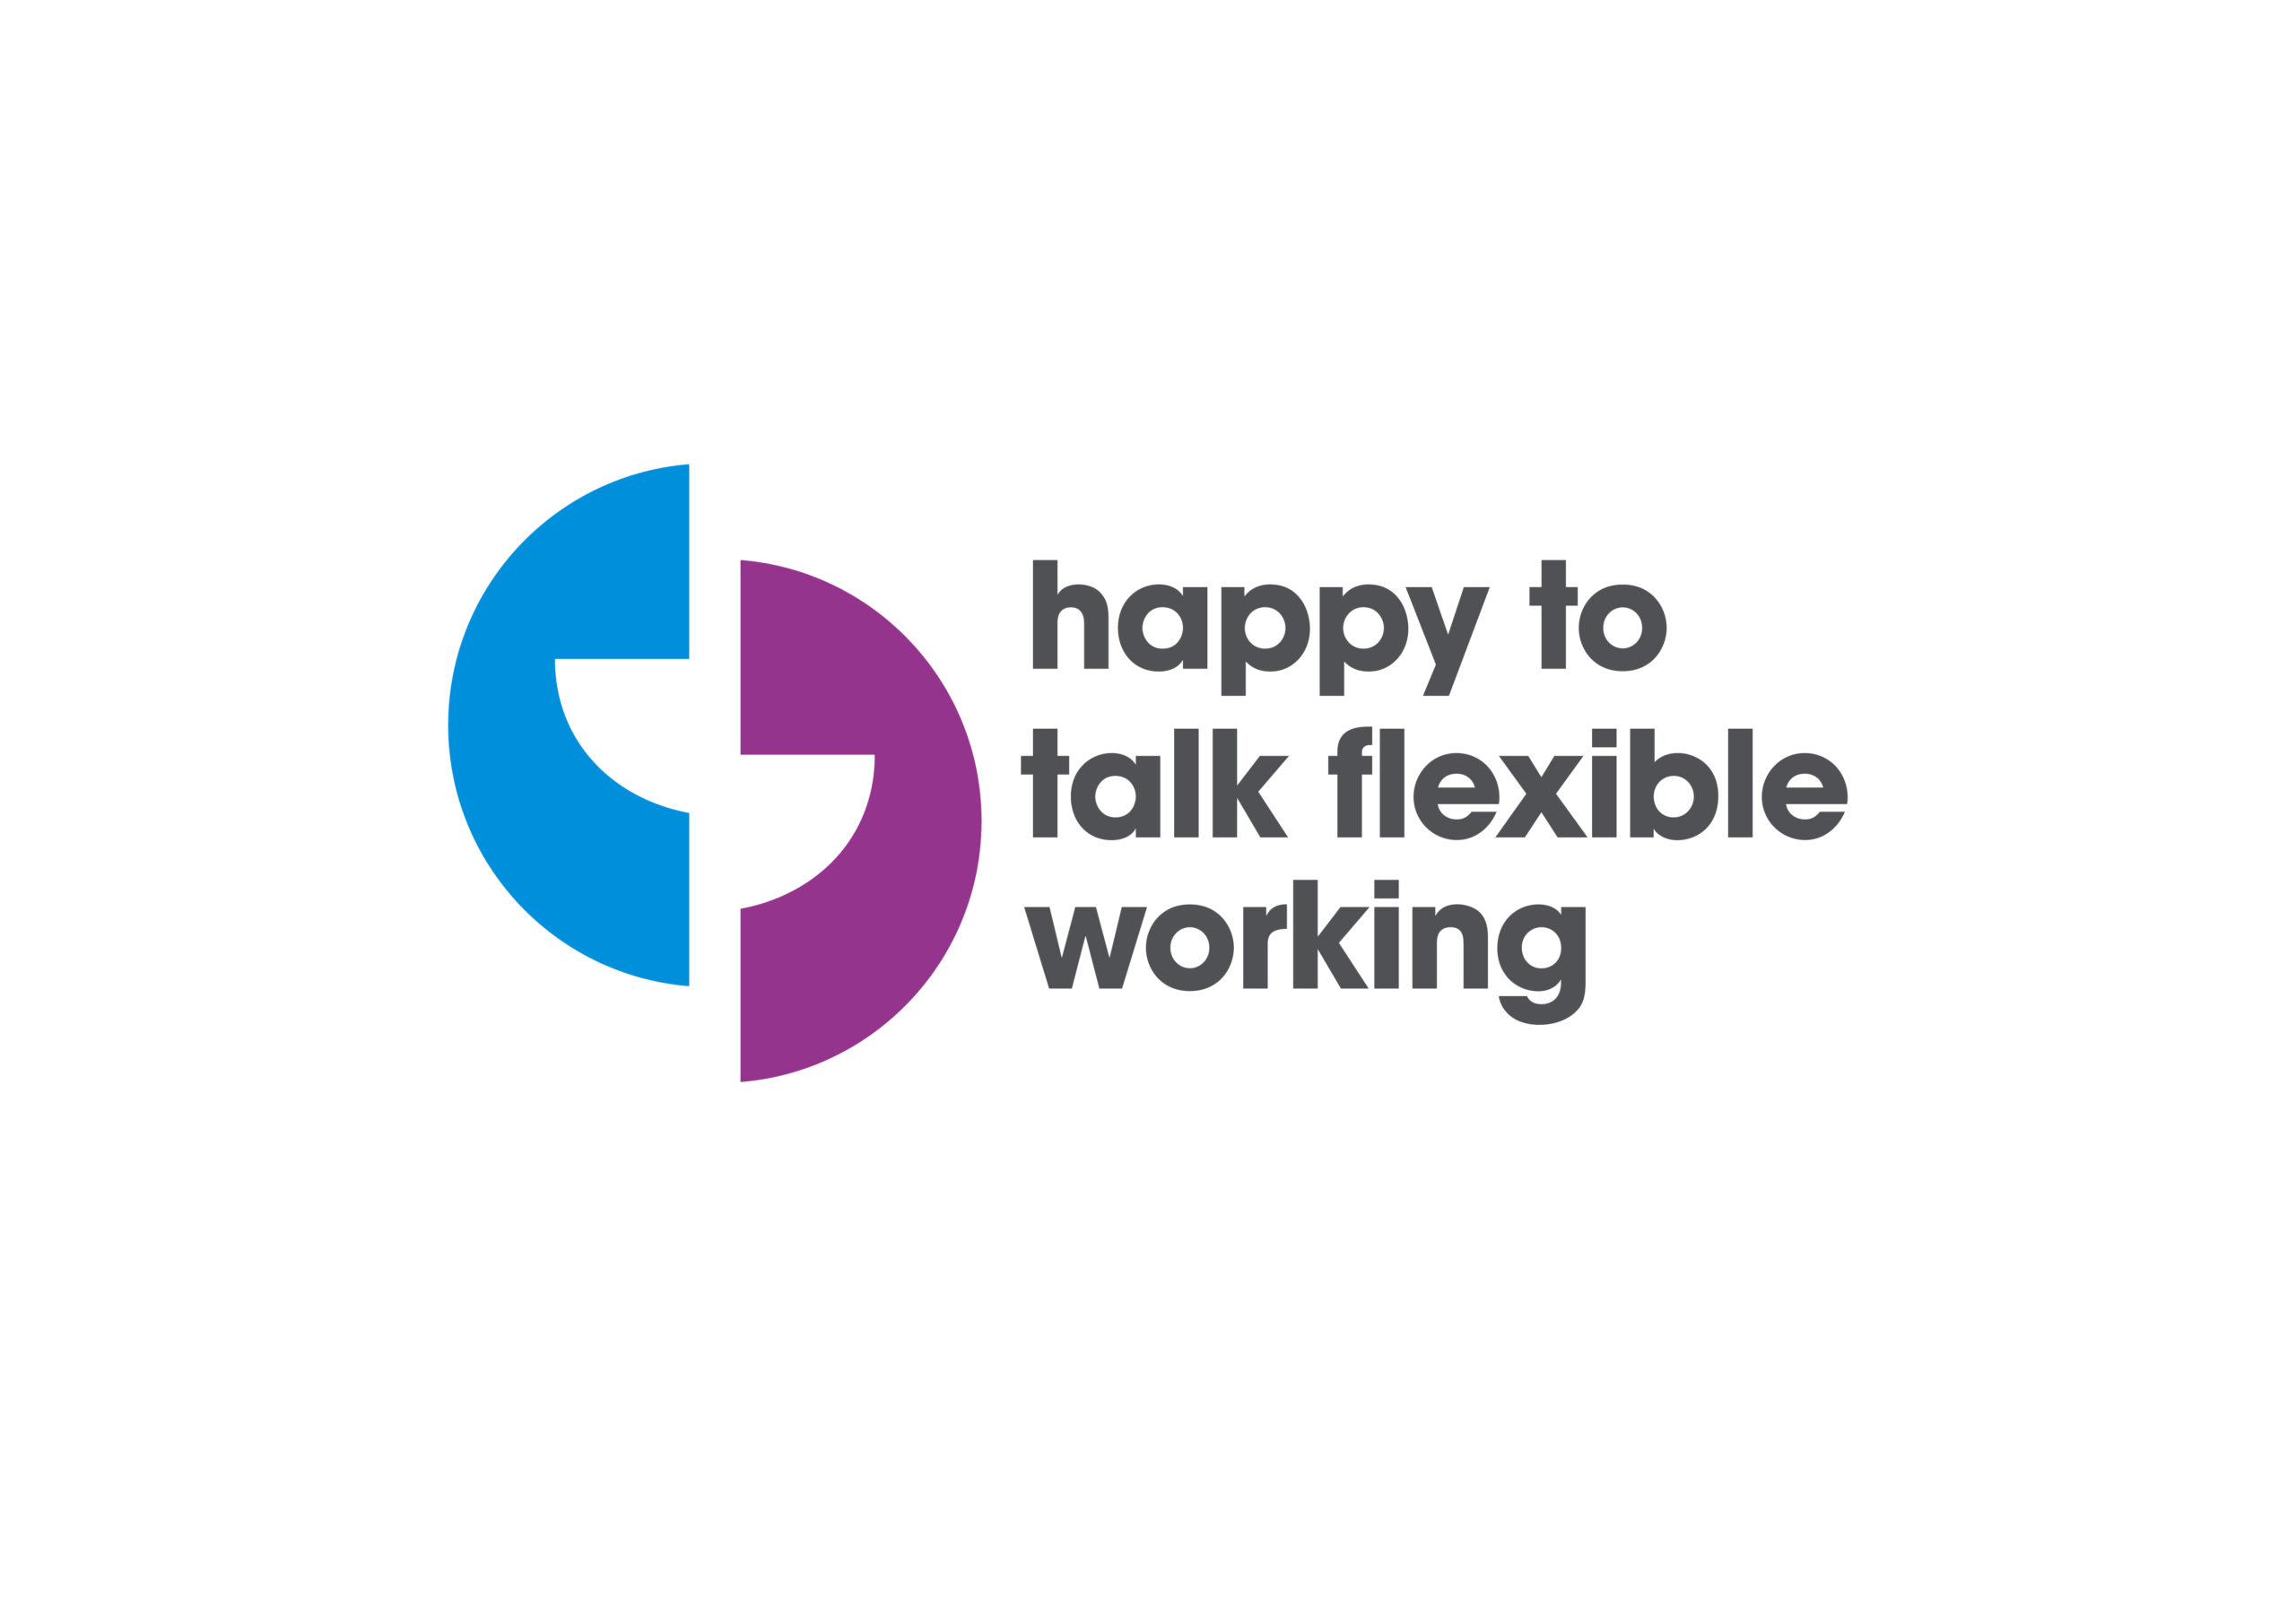 Happy to talk flex working